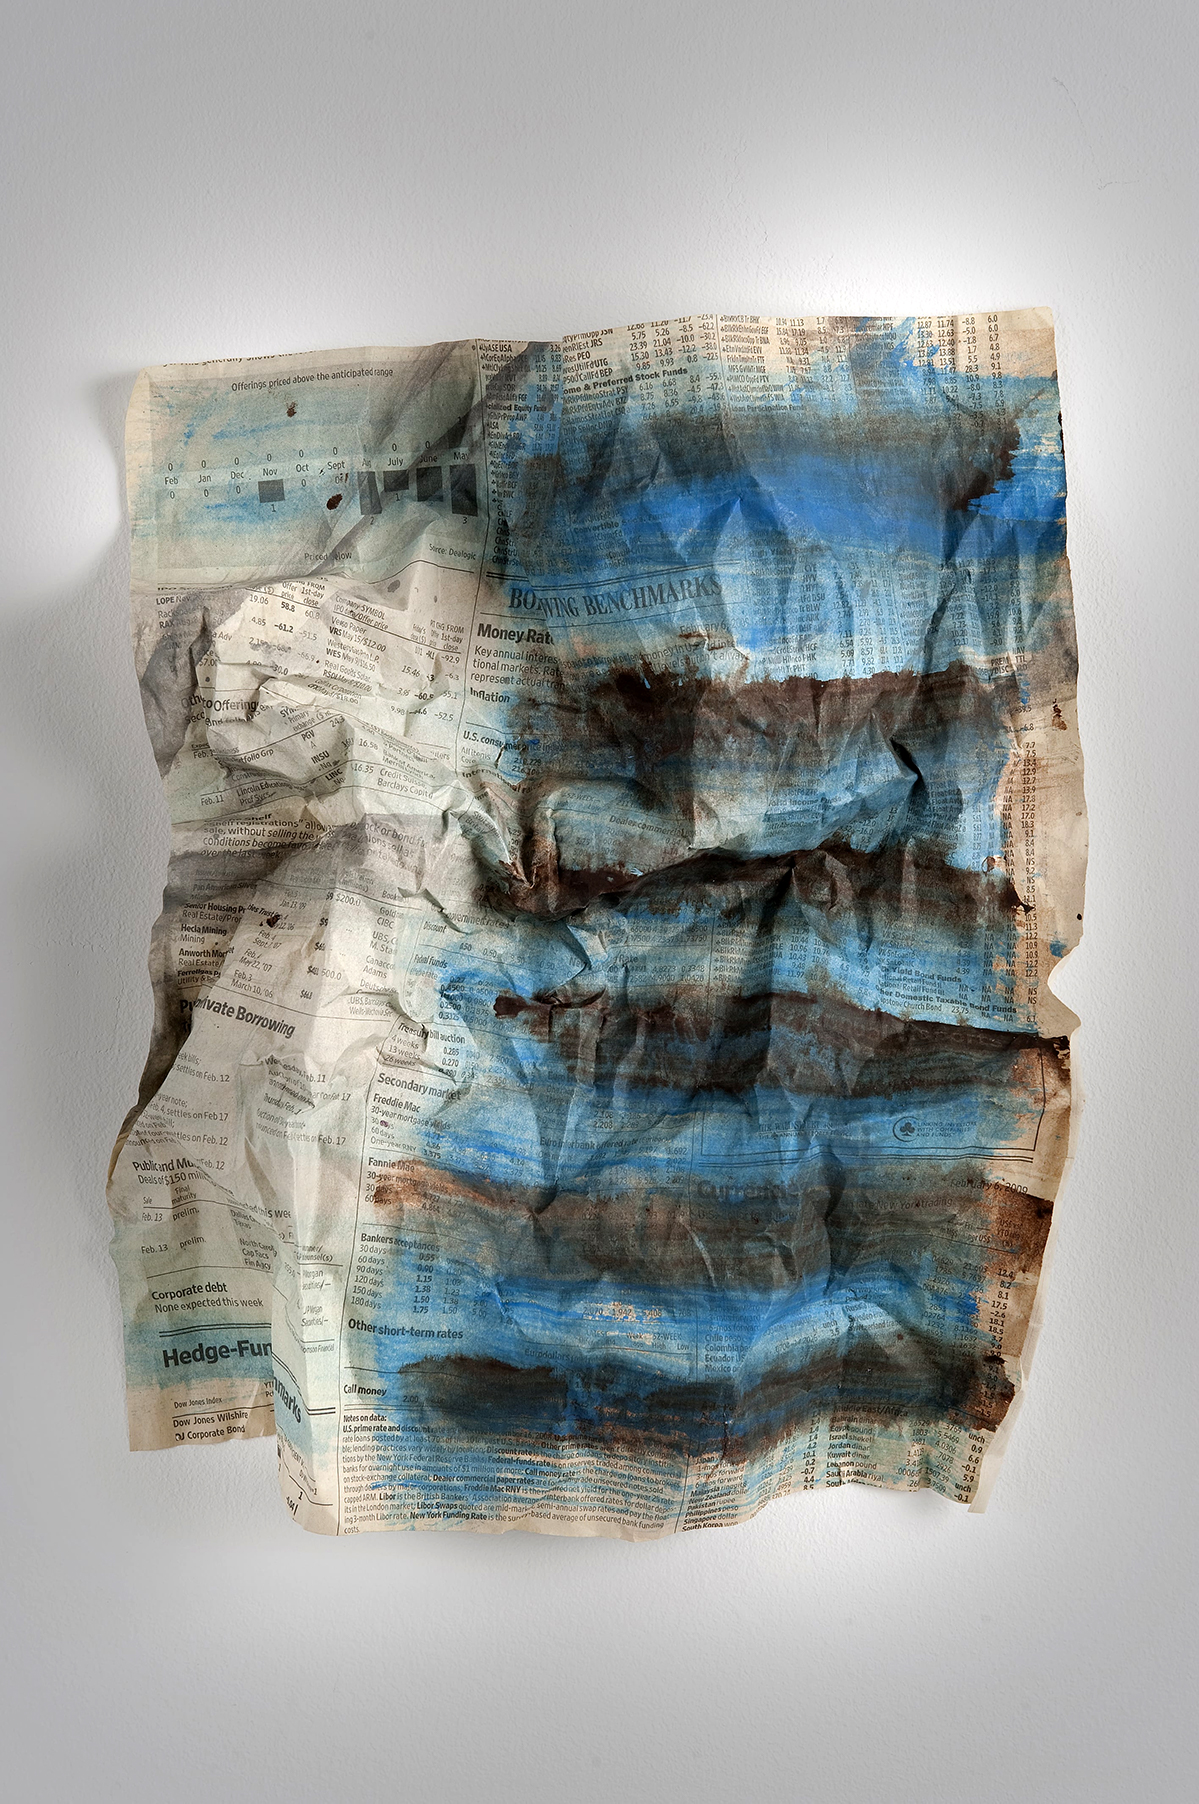 CRUMPLED BLUE   Acrylic wash, crumpled newsprint  11 x 8 Inches